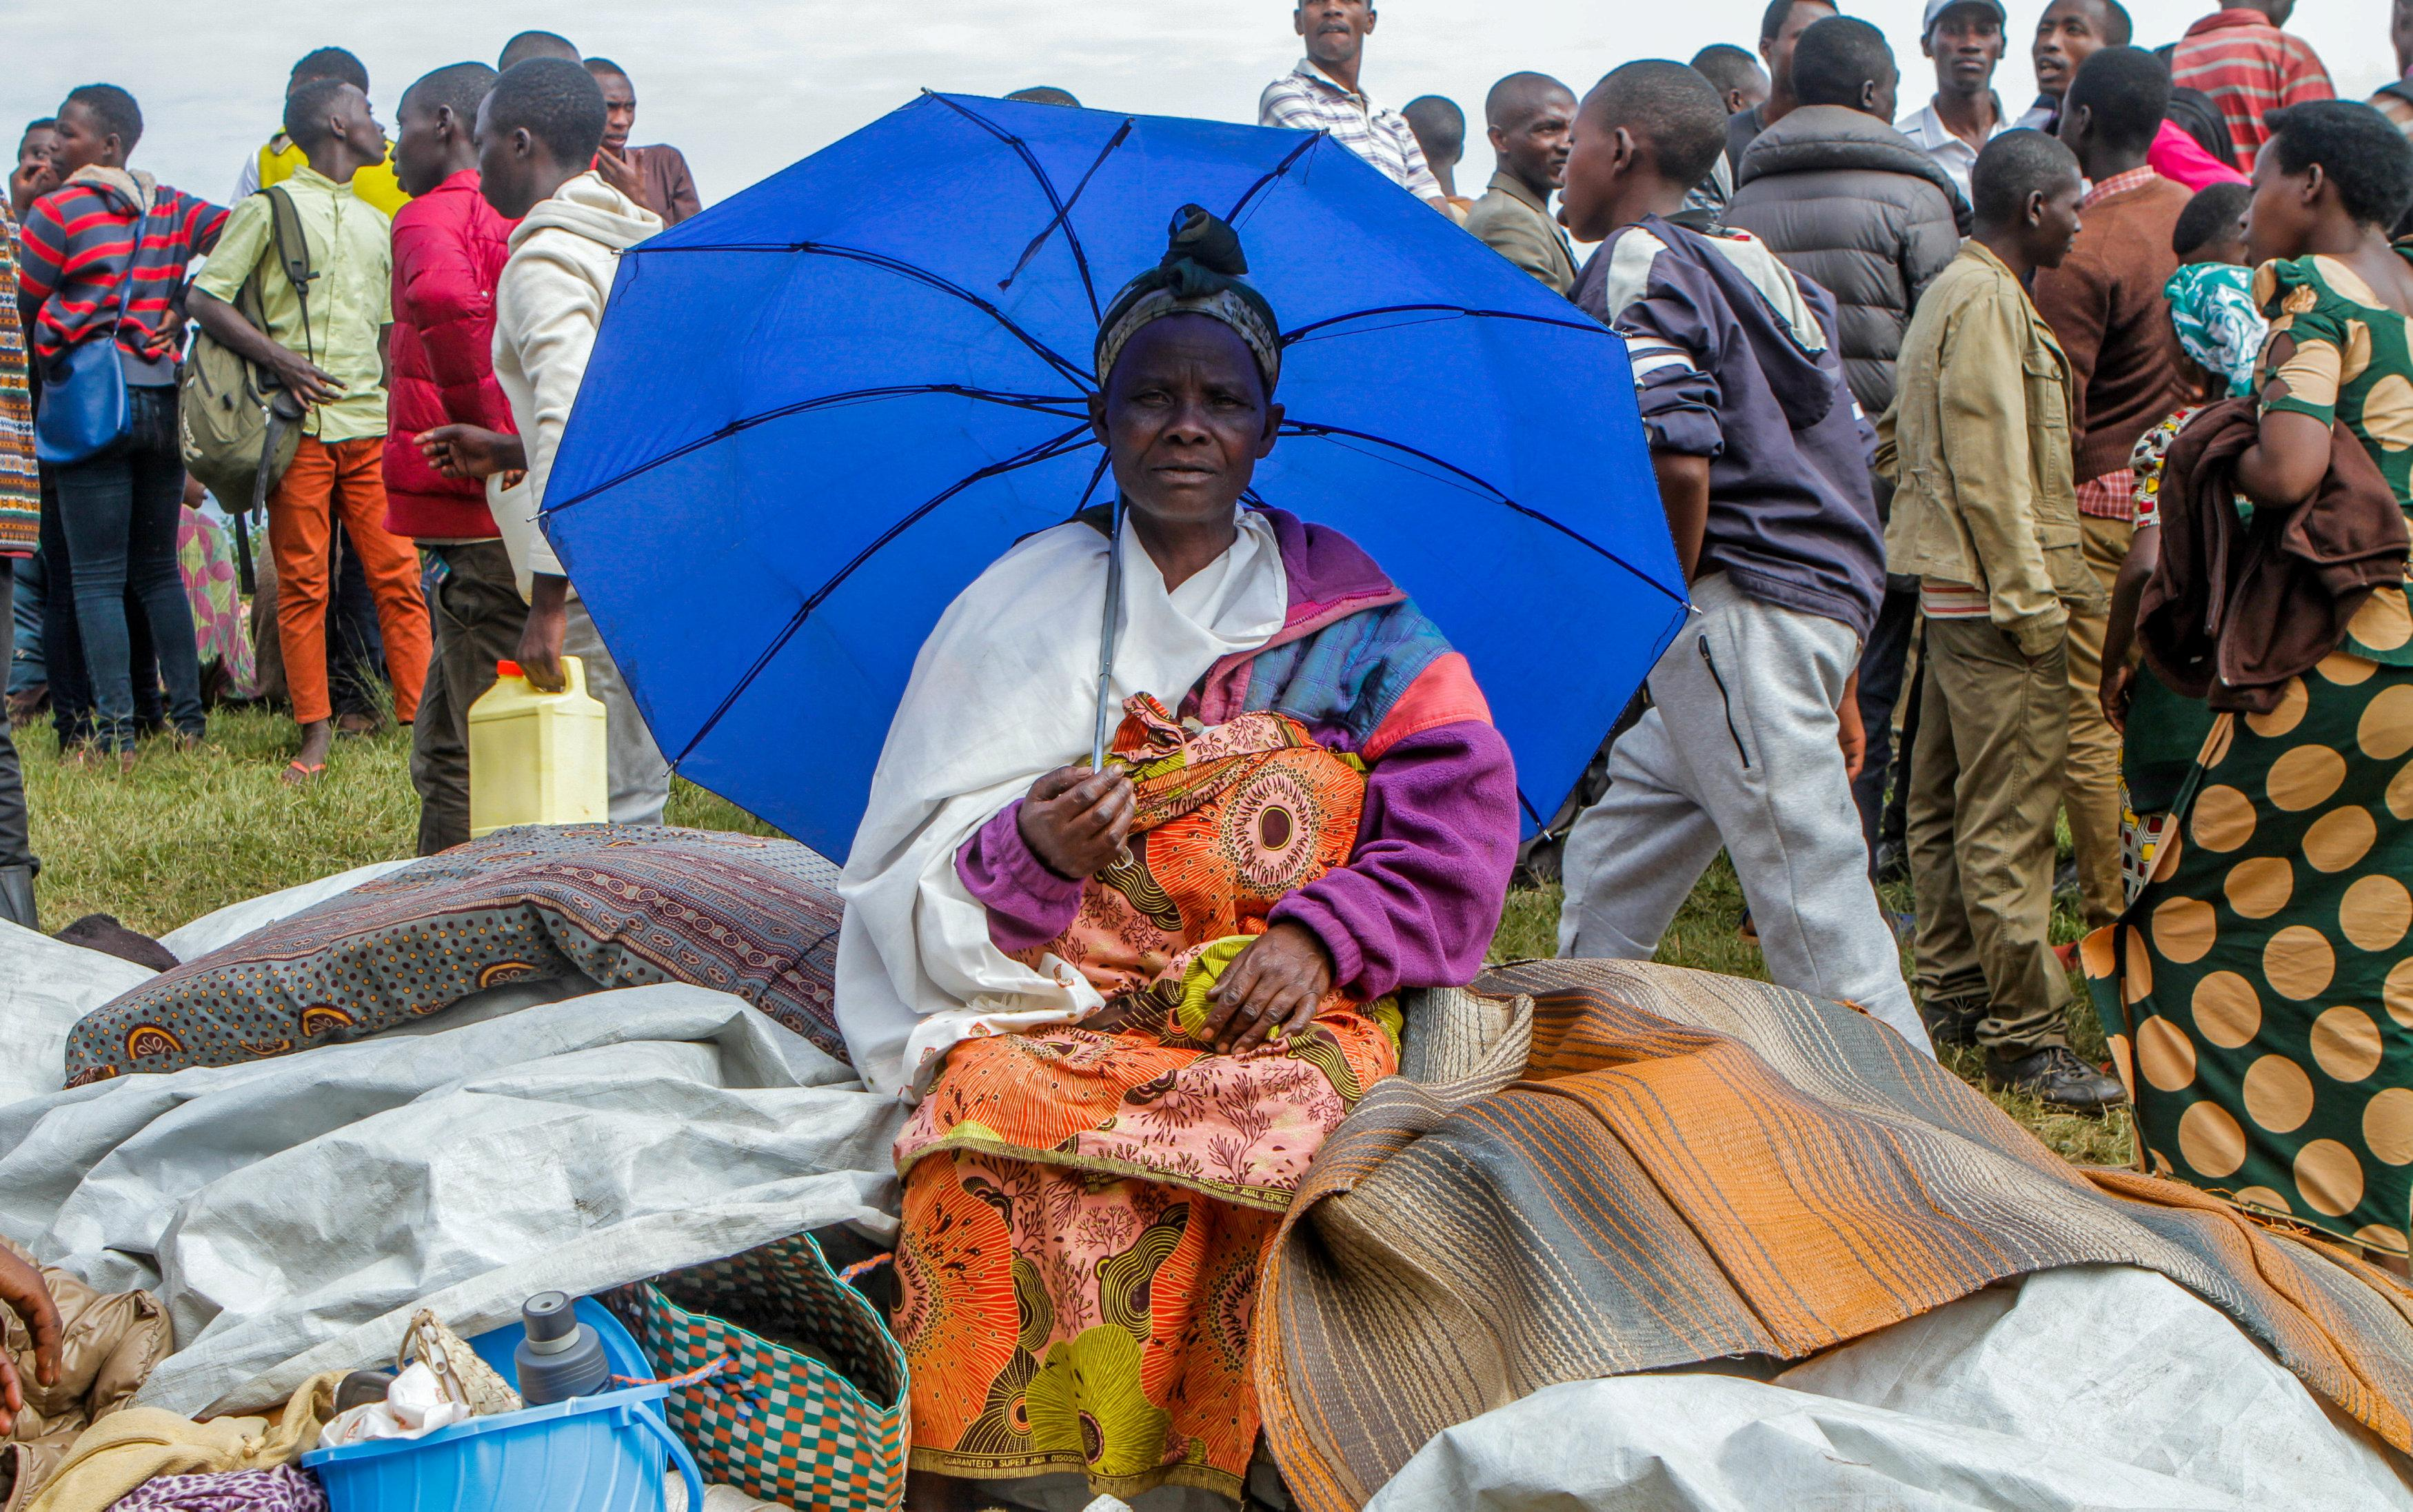 A refugee from the Democratic Republic of Congo sits with her belongings near the United Nations High Commissioner for Refugees (UNHCR) offices in Kiziba refugee camp in Karongi District, Rwanda February 21, 2018. Jean Bizimana